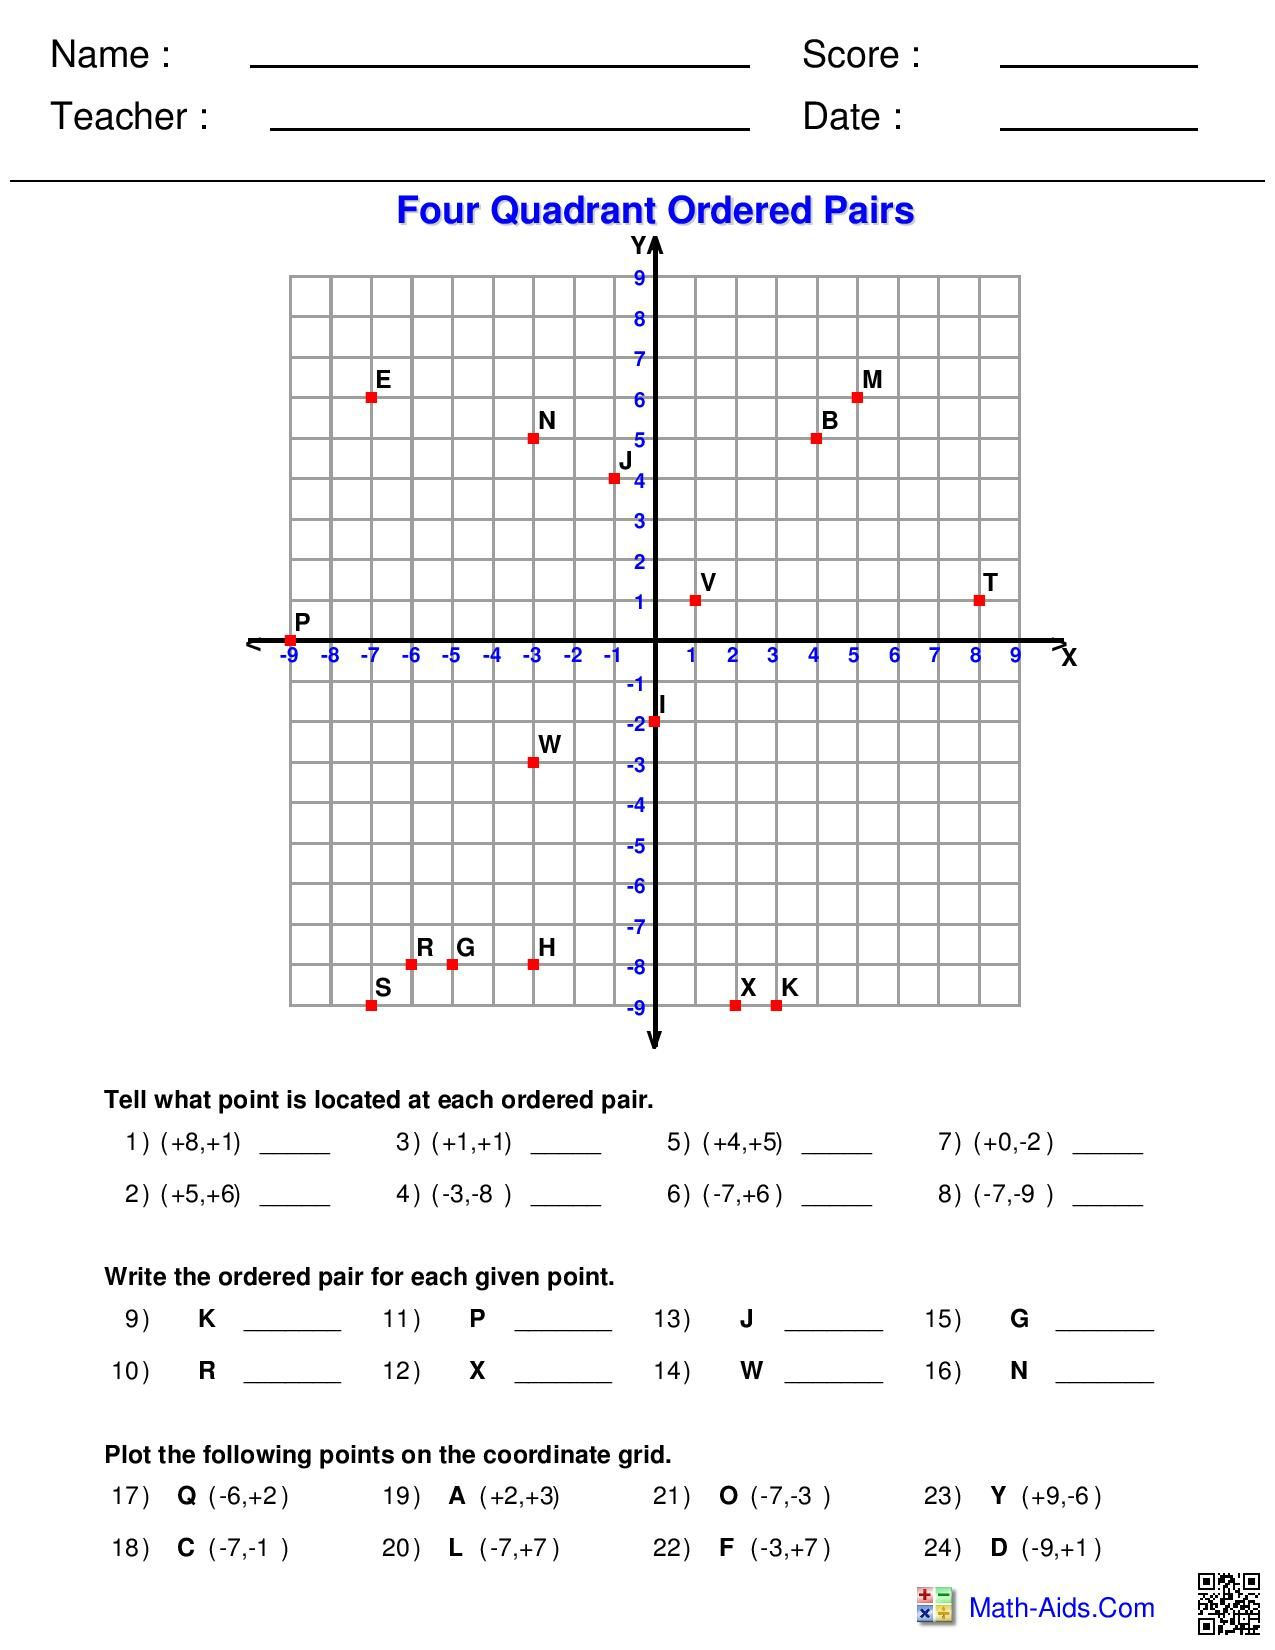 Four Quadrant Ordered Pairs Worksheet